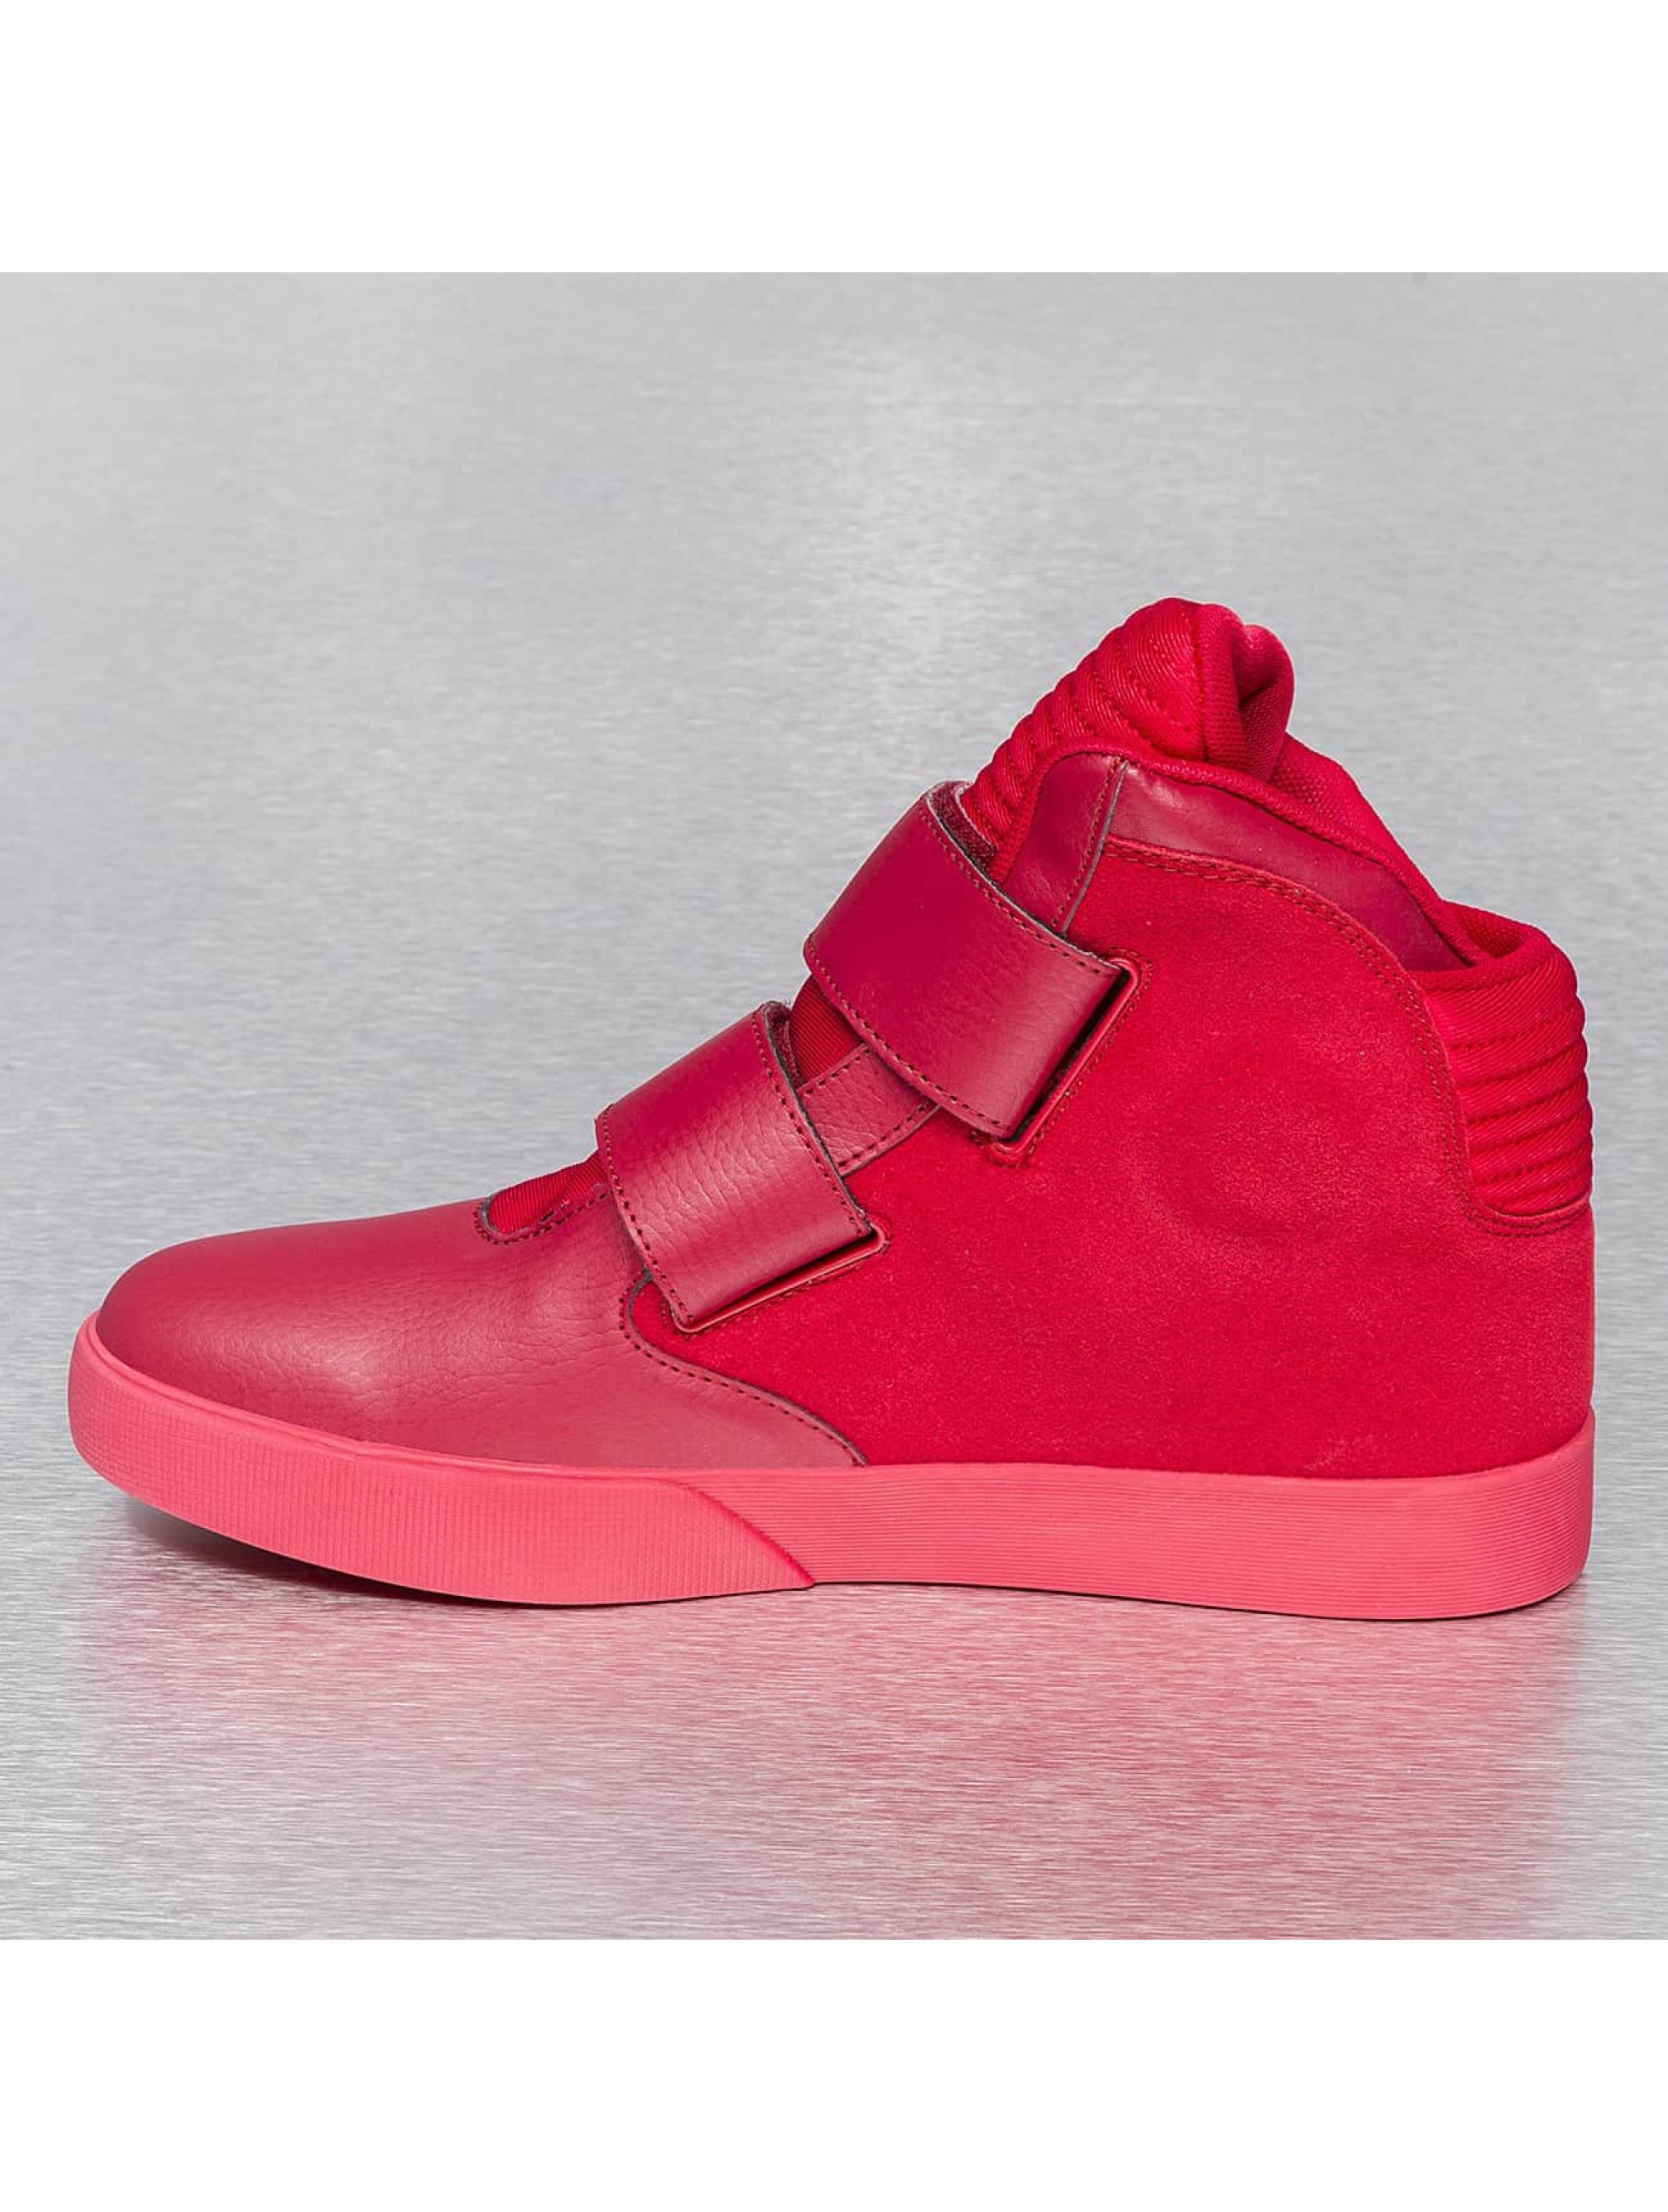 New York Style Sneakers Big Red czerwony